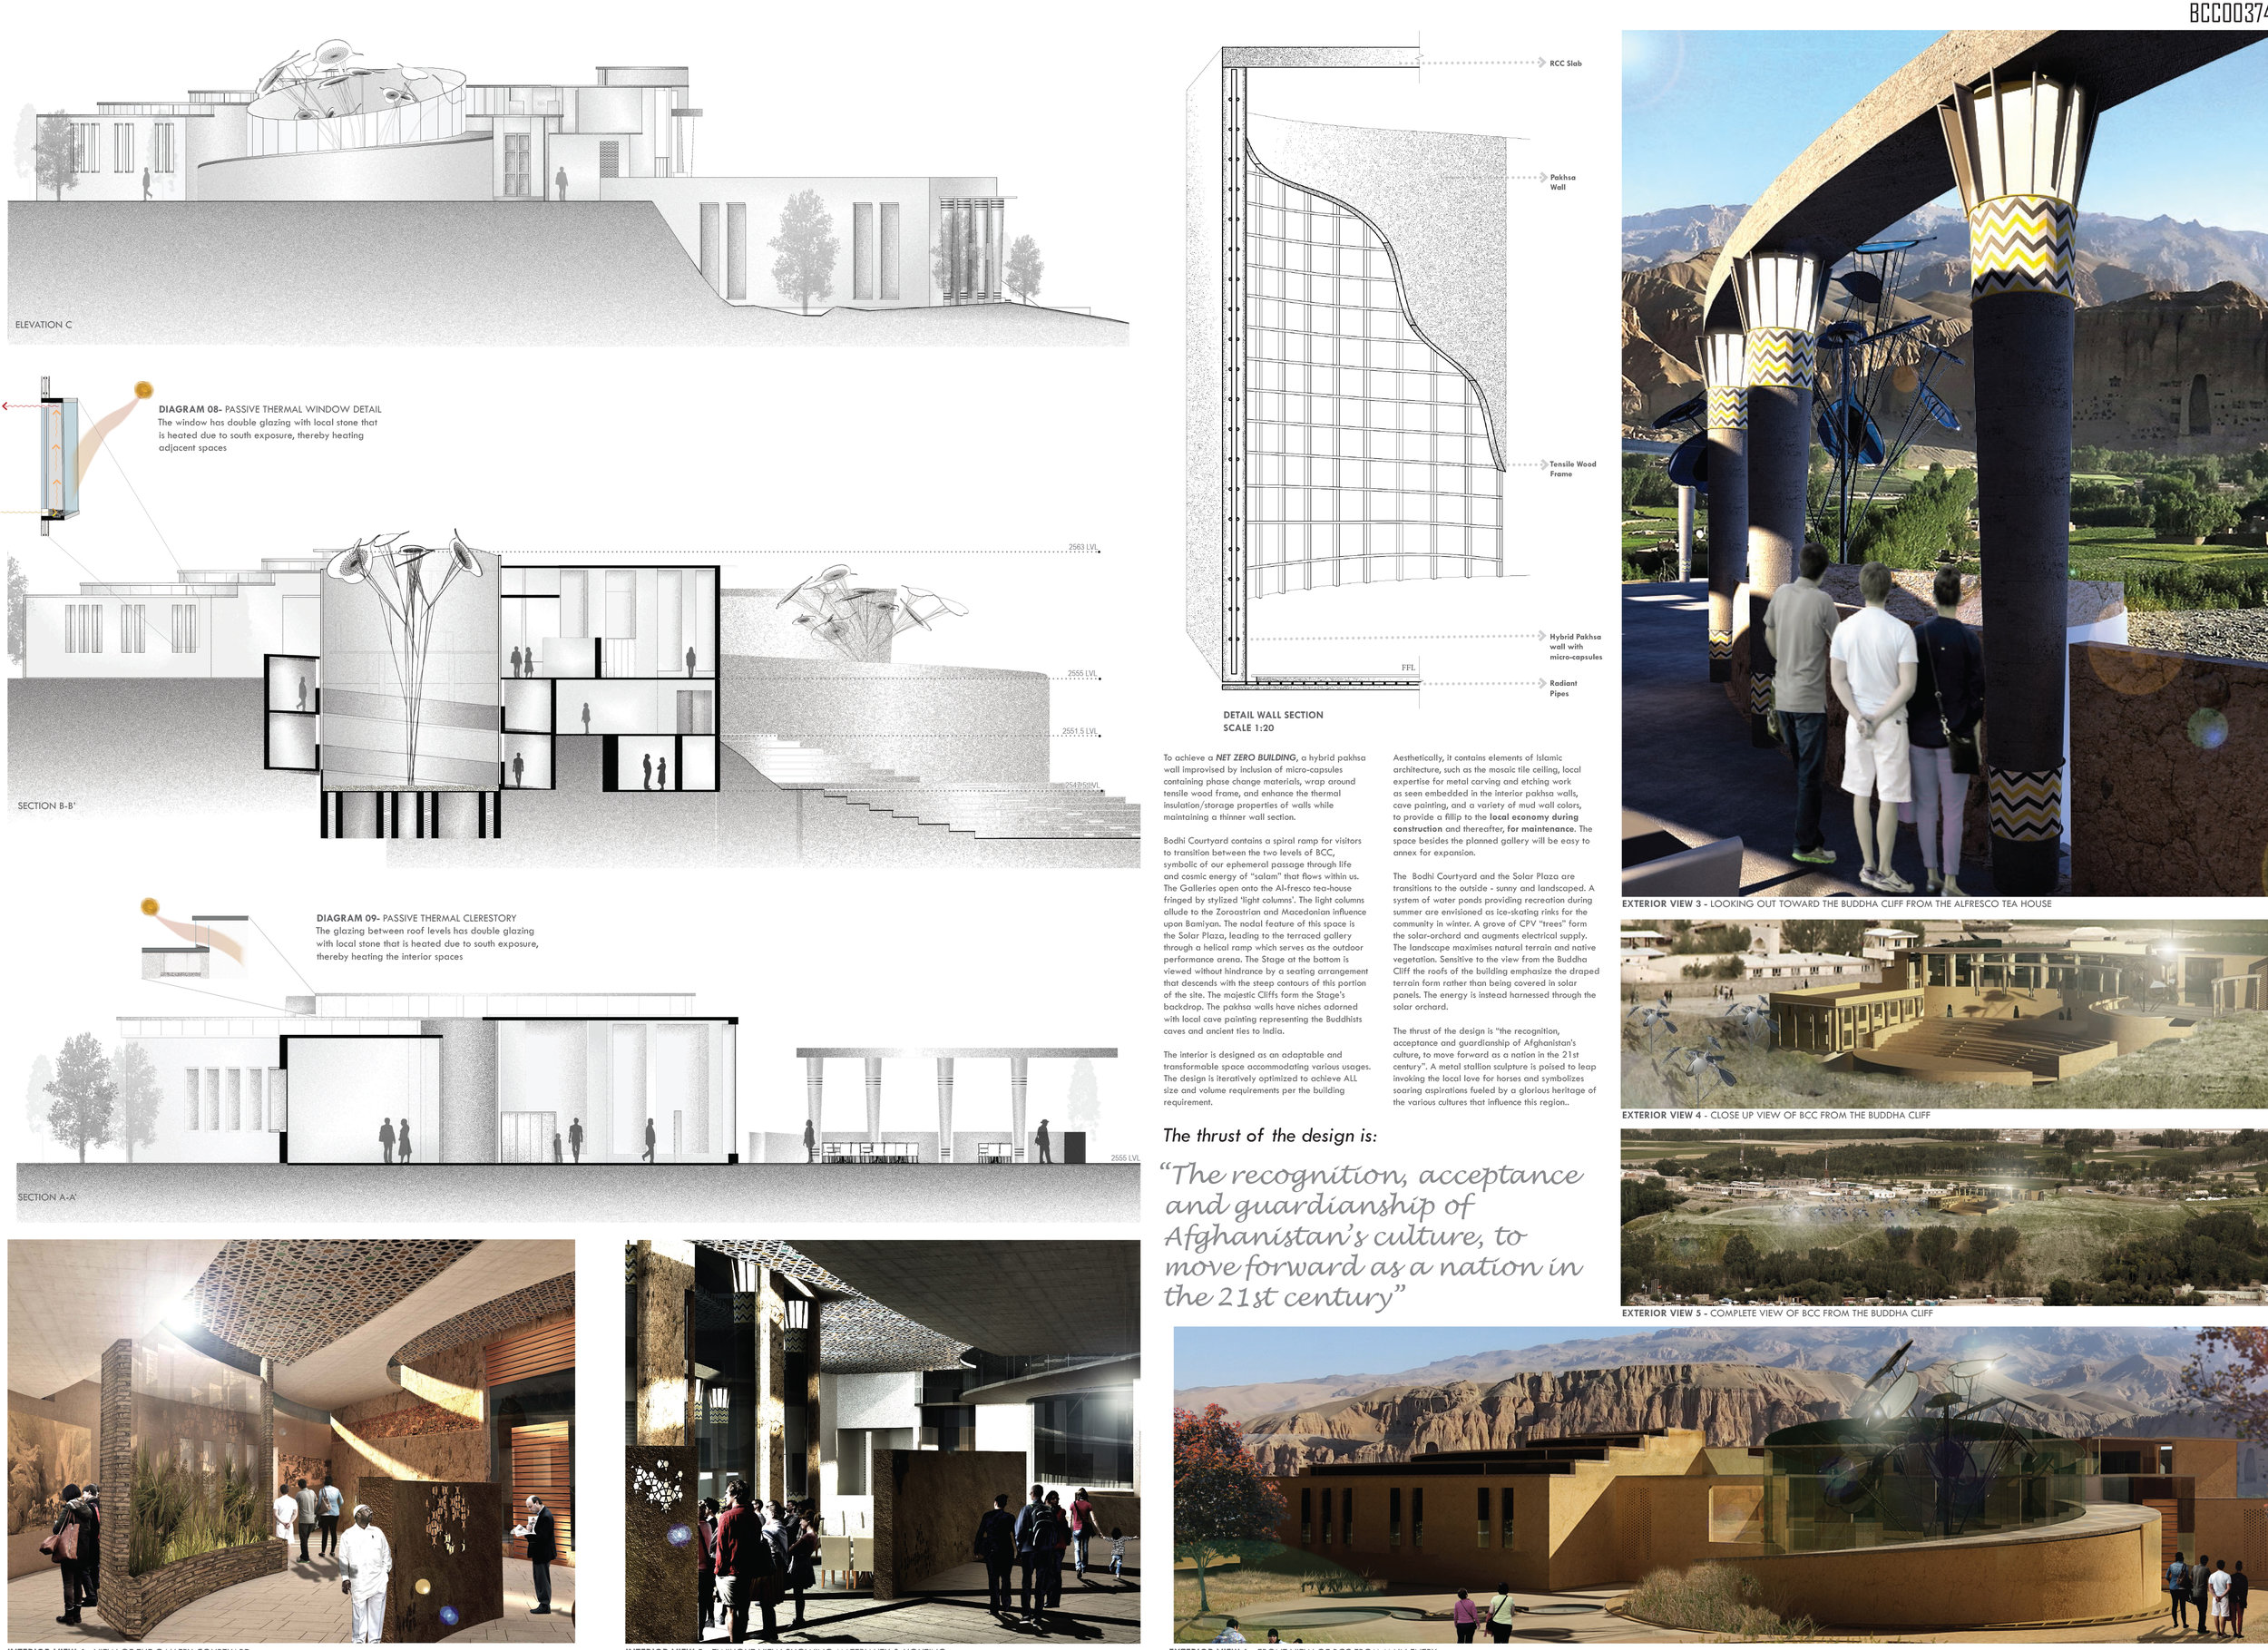 Composed sheets for the Bamiyan competition, worked on  Revit, Photoshop and Illustrator . Worked on the elevation drawings, and the detailing for the project.